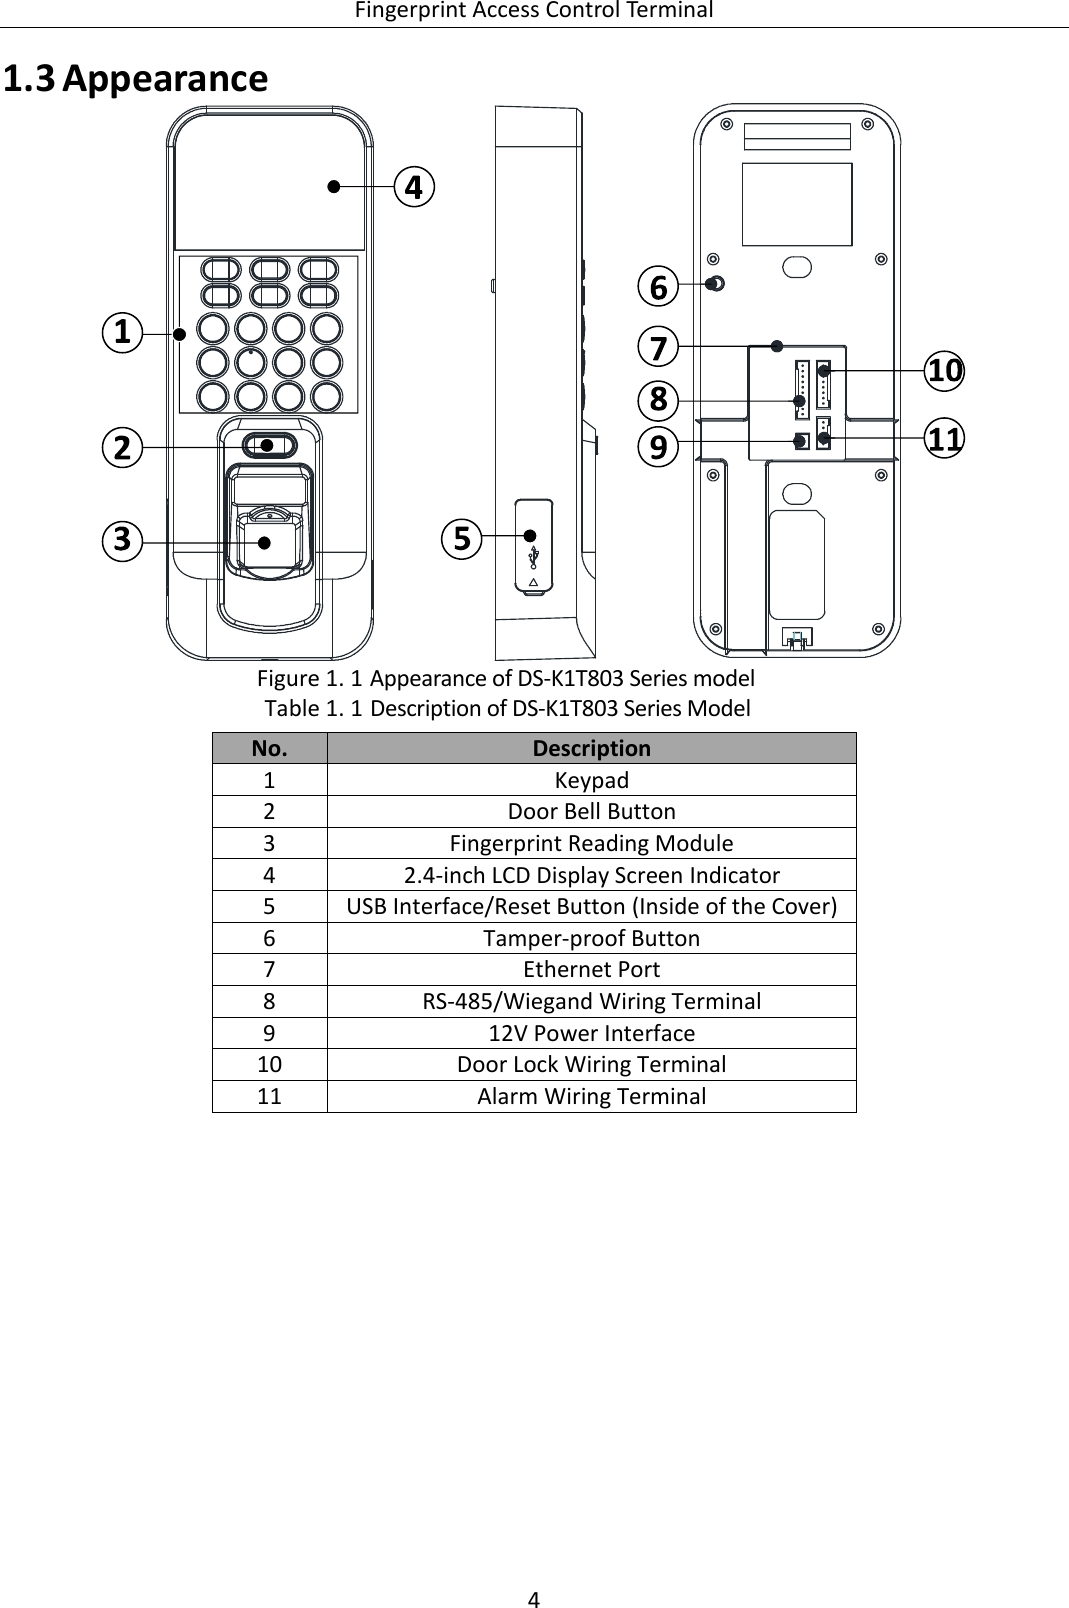 Access Control Wiring Diagram Door Access Control Wiring Diagram Collection Page Of K T Mf Fingerprint Access Control Terminal User O on Cameras Wiring Diagram Free Online Image Schematic